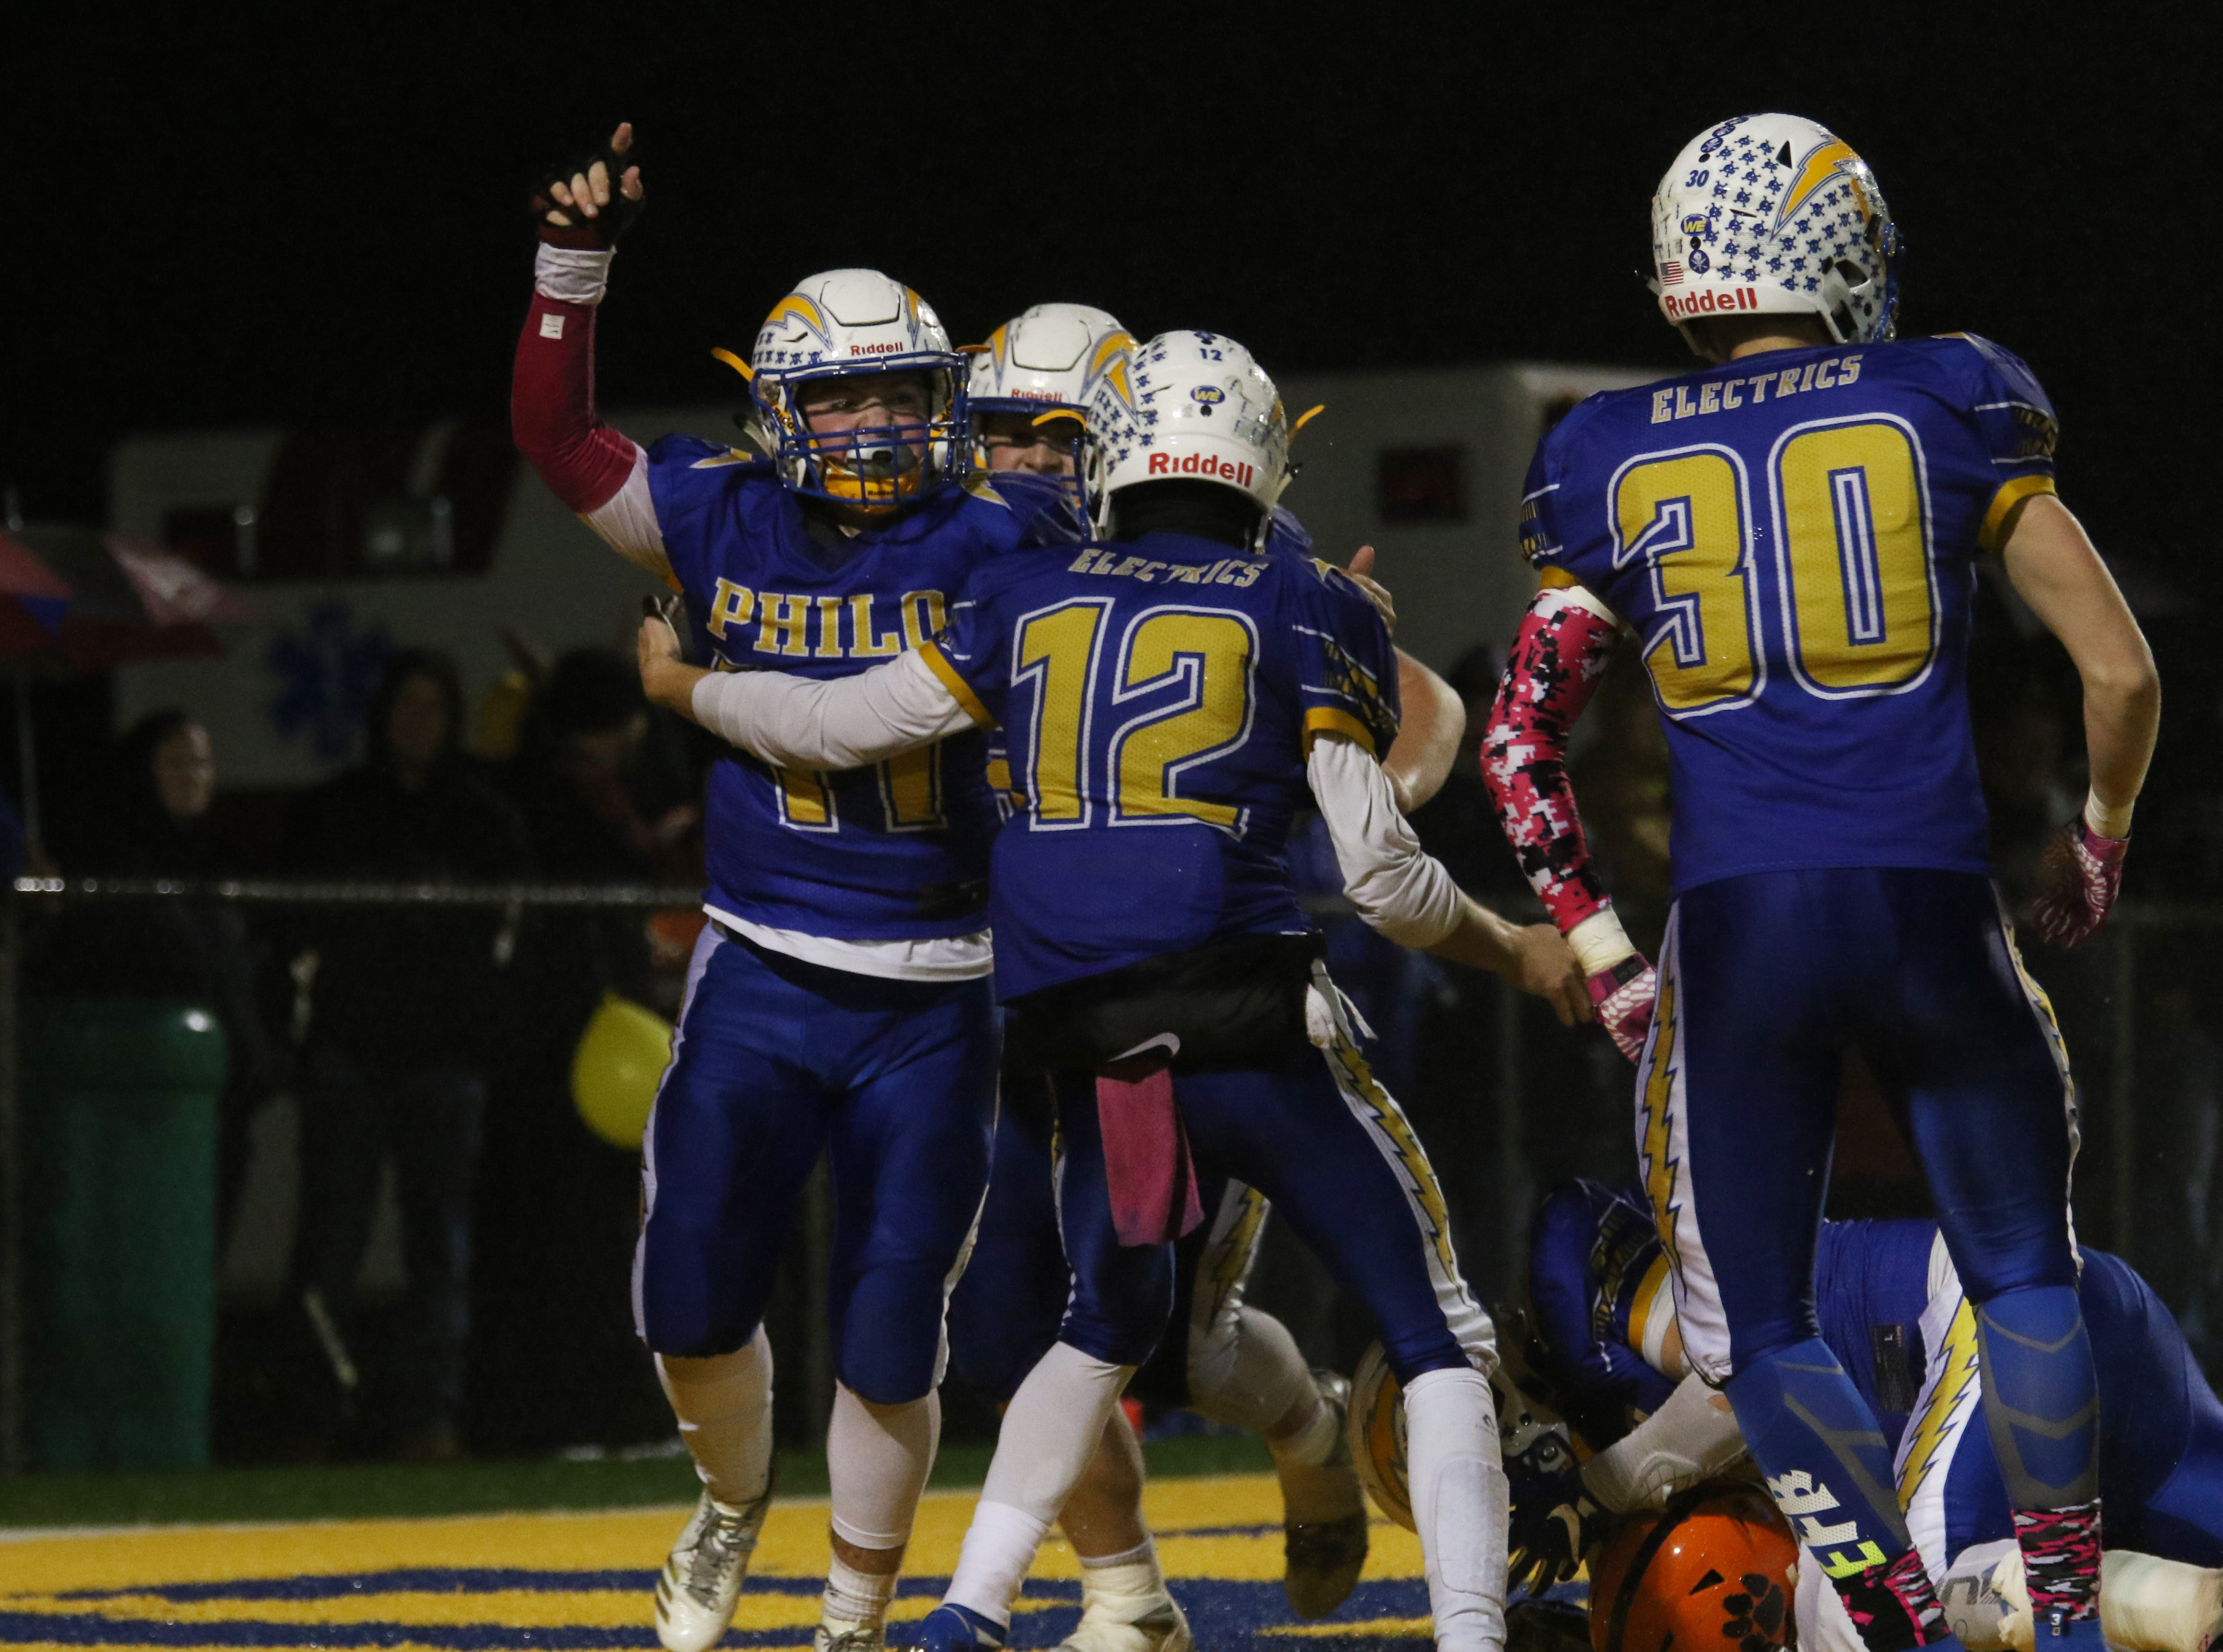 Philo defeated visiting New Lexington to finish the season 7-3.